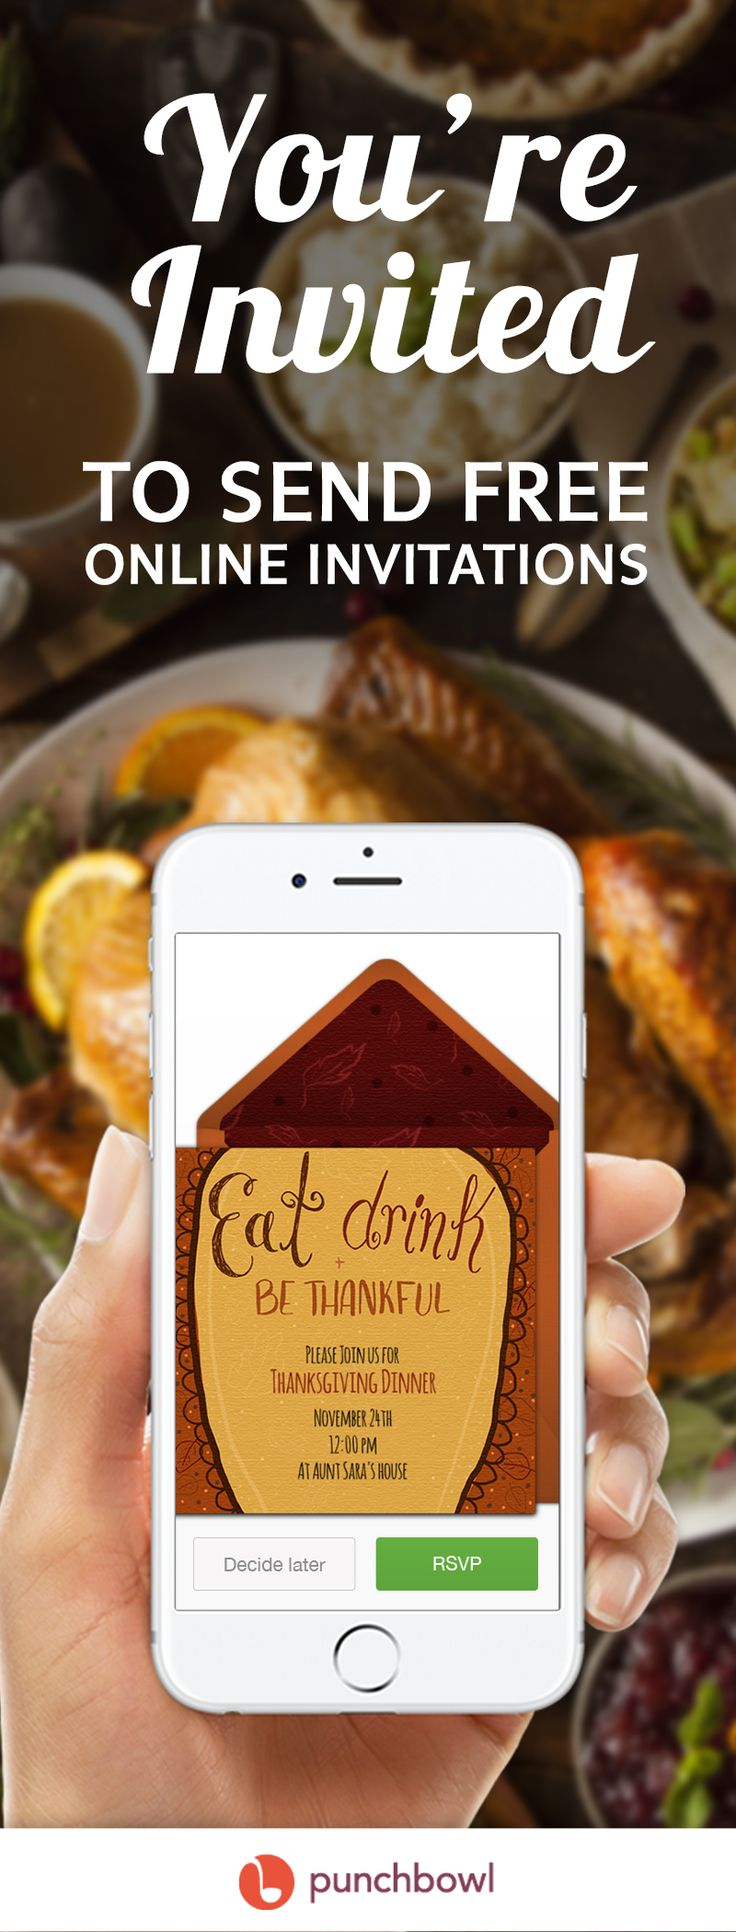 Paper invites are too formal, and emails are too casual. Get it just right with online invitations from Punchbowl. We've got everything you need for your Thanksgiving party.      https://www.punchbowl.com/online-invitations/v/f/thanksgiving?cat_header=true?utm_source=Pinterest&utm_medium=124.6P